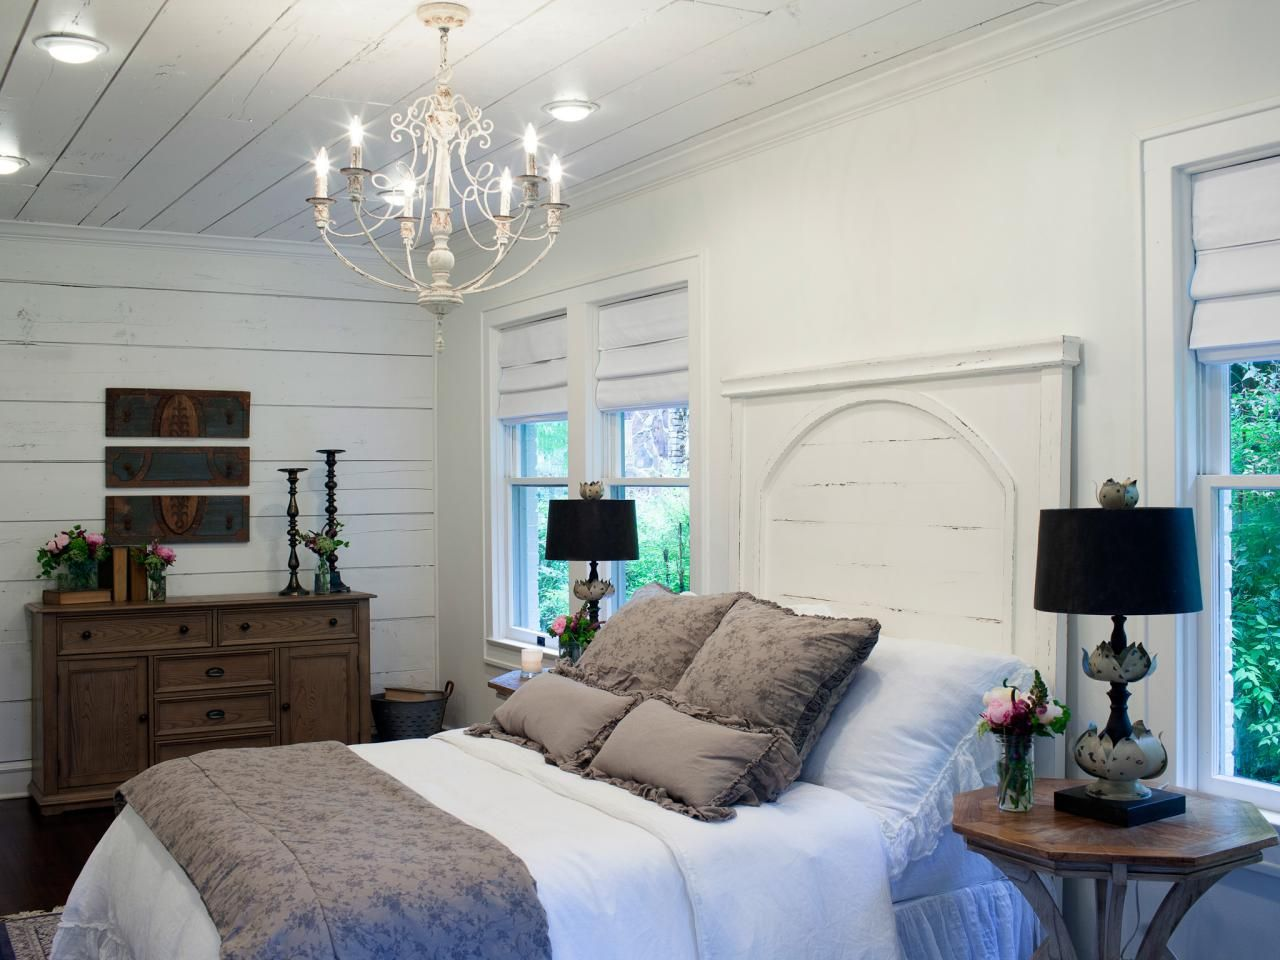 joanna gaines bedrooms photos hgtv 39 s fixer upper with ForJoanna Gaines Bedroom Designs